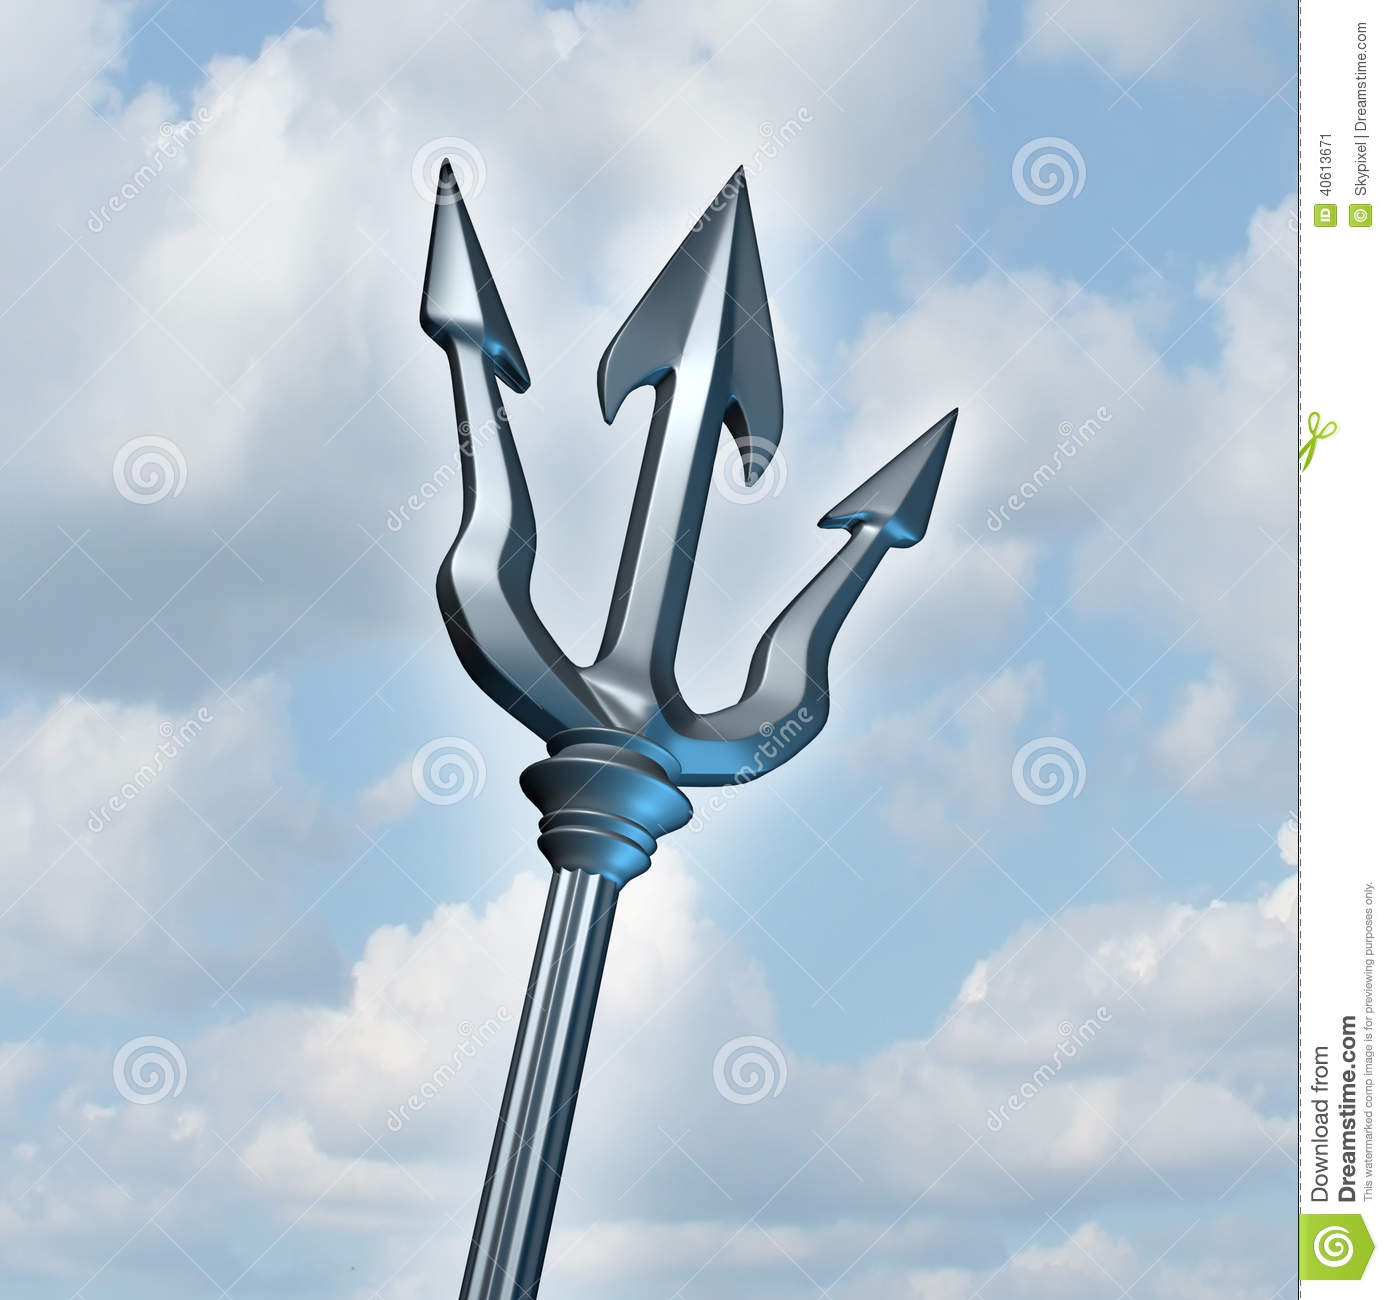 ... as a three dimensional weapon to catch fish or fight as a gladiator